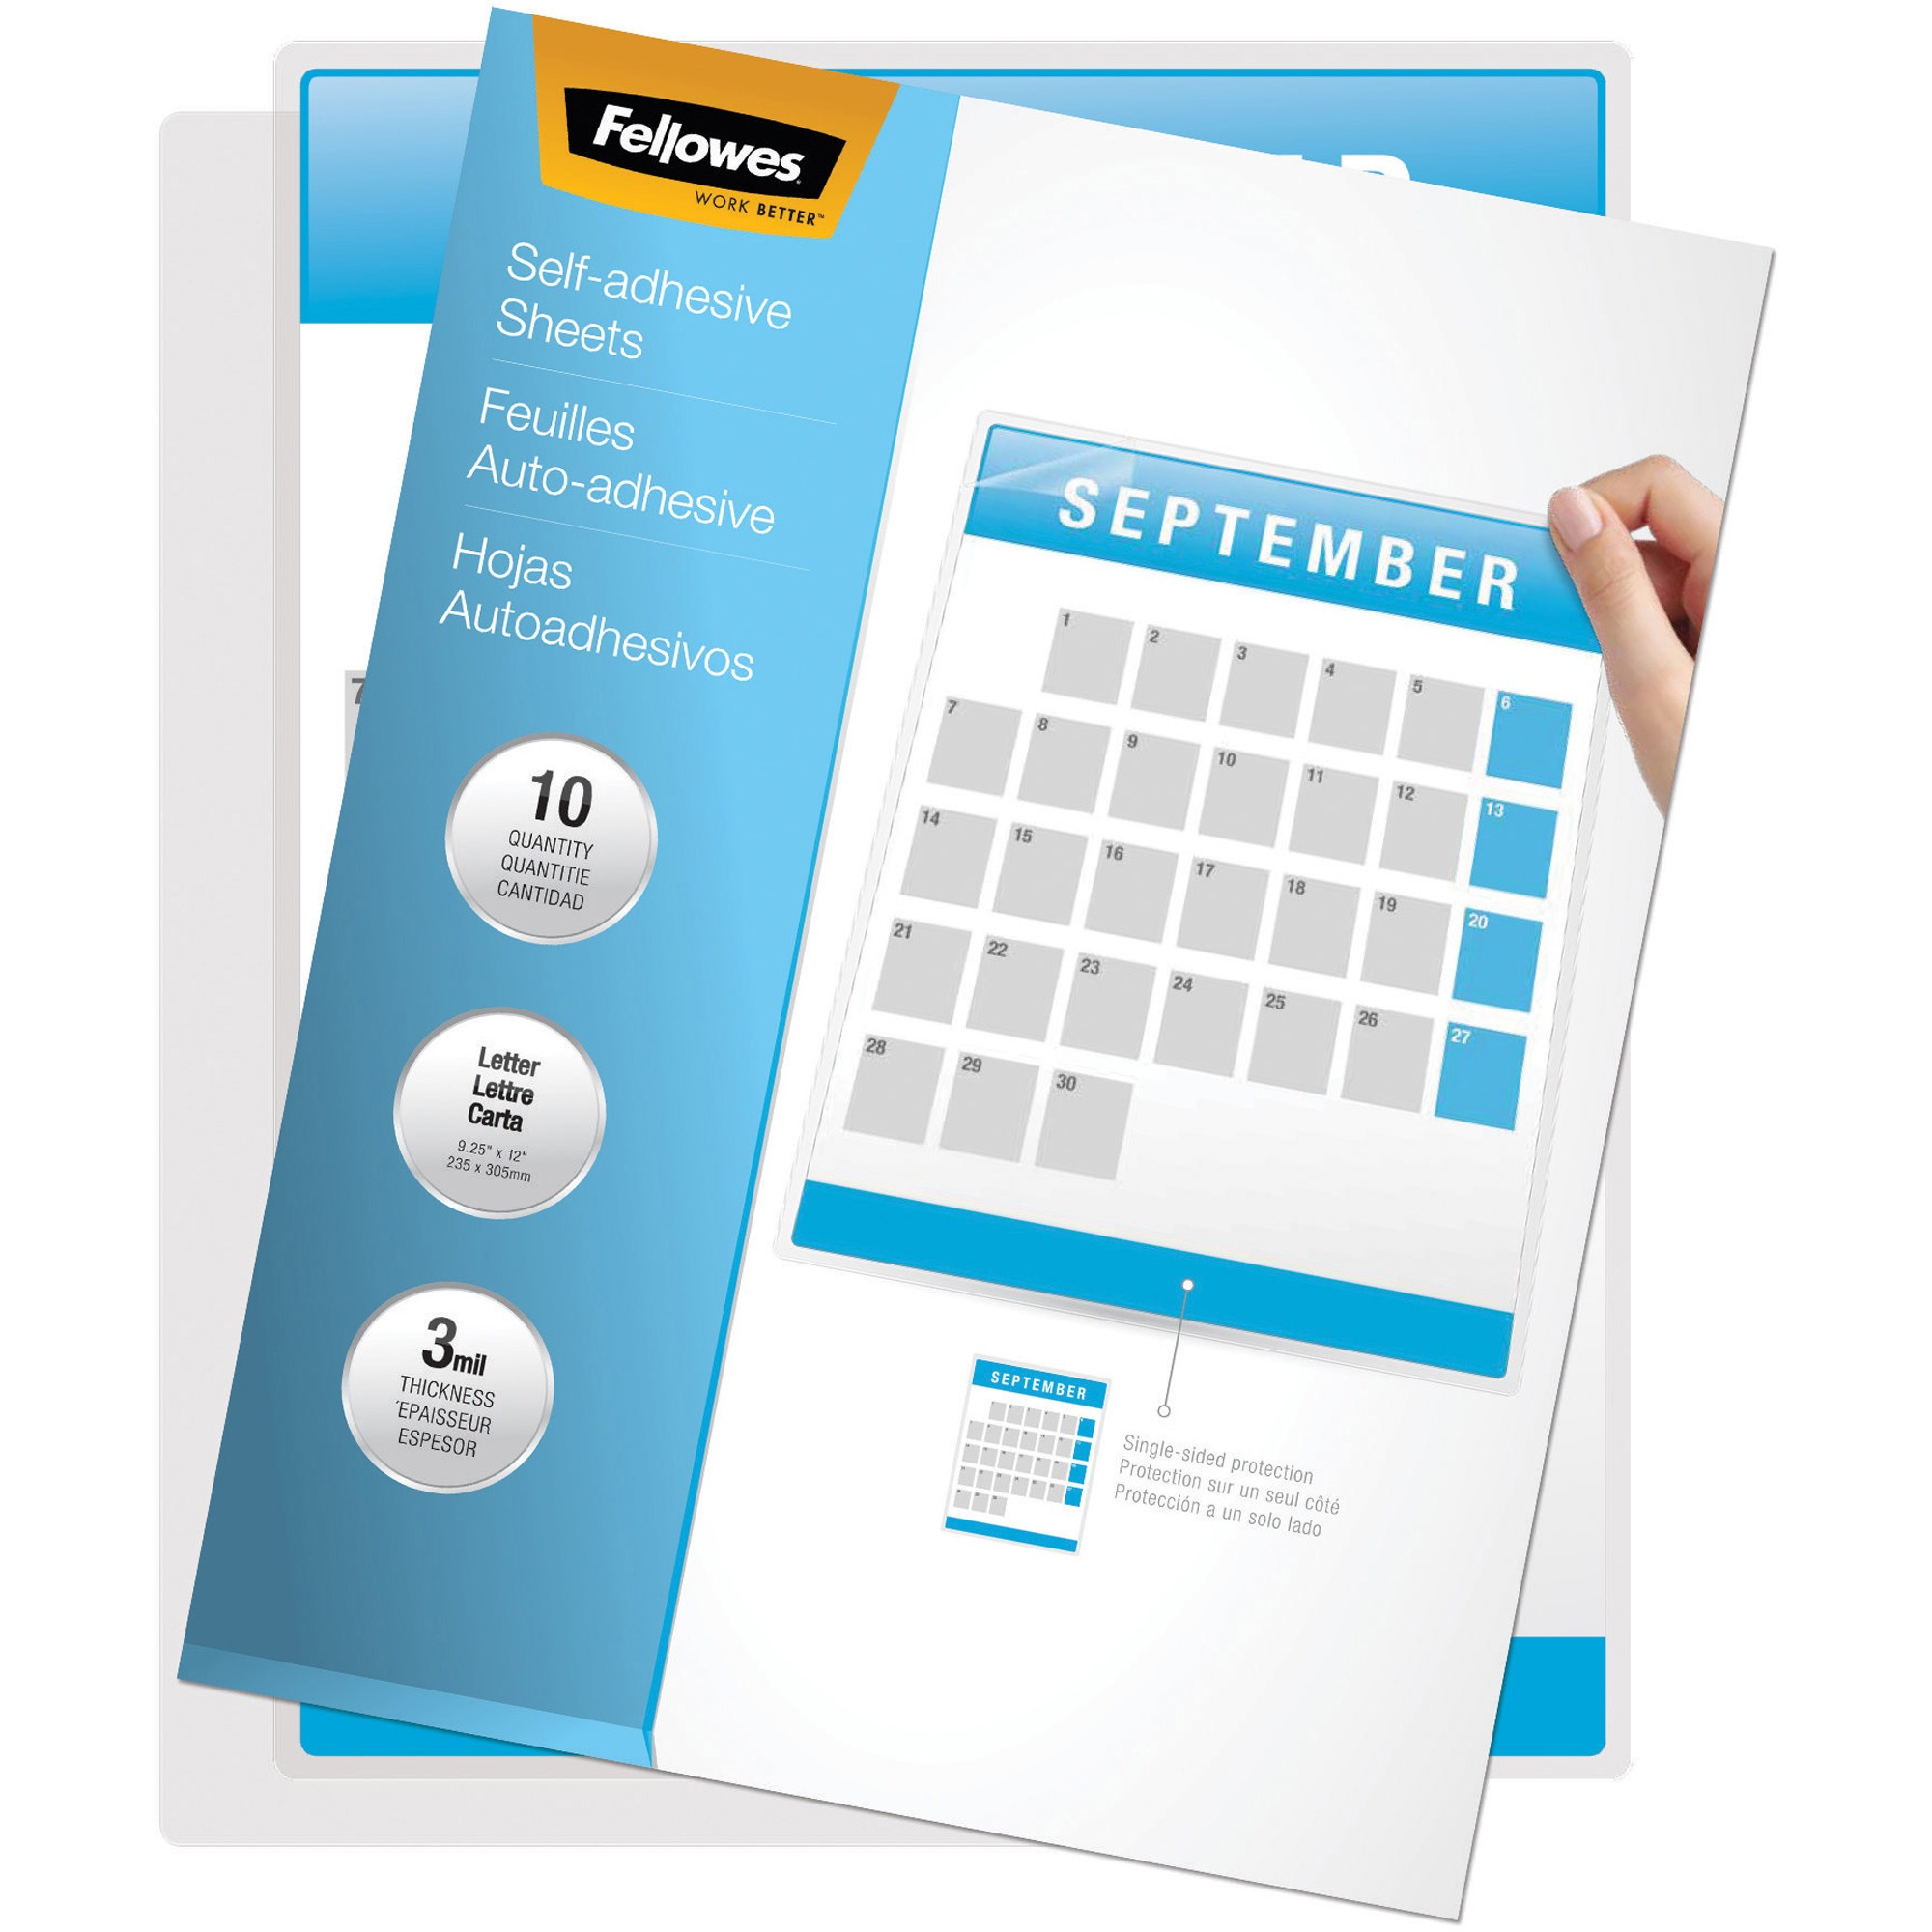 Fellowes, FEL5221501, Self-adhesive Letter 3mil Laminating Sheets, 10 / Pack, Clear